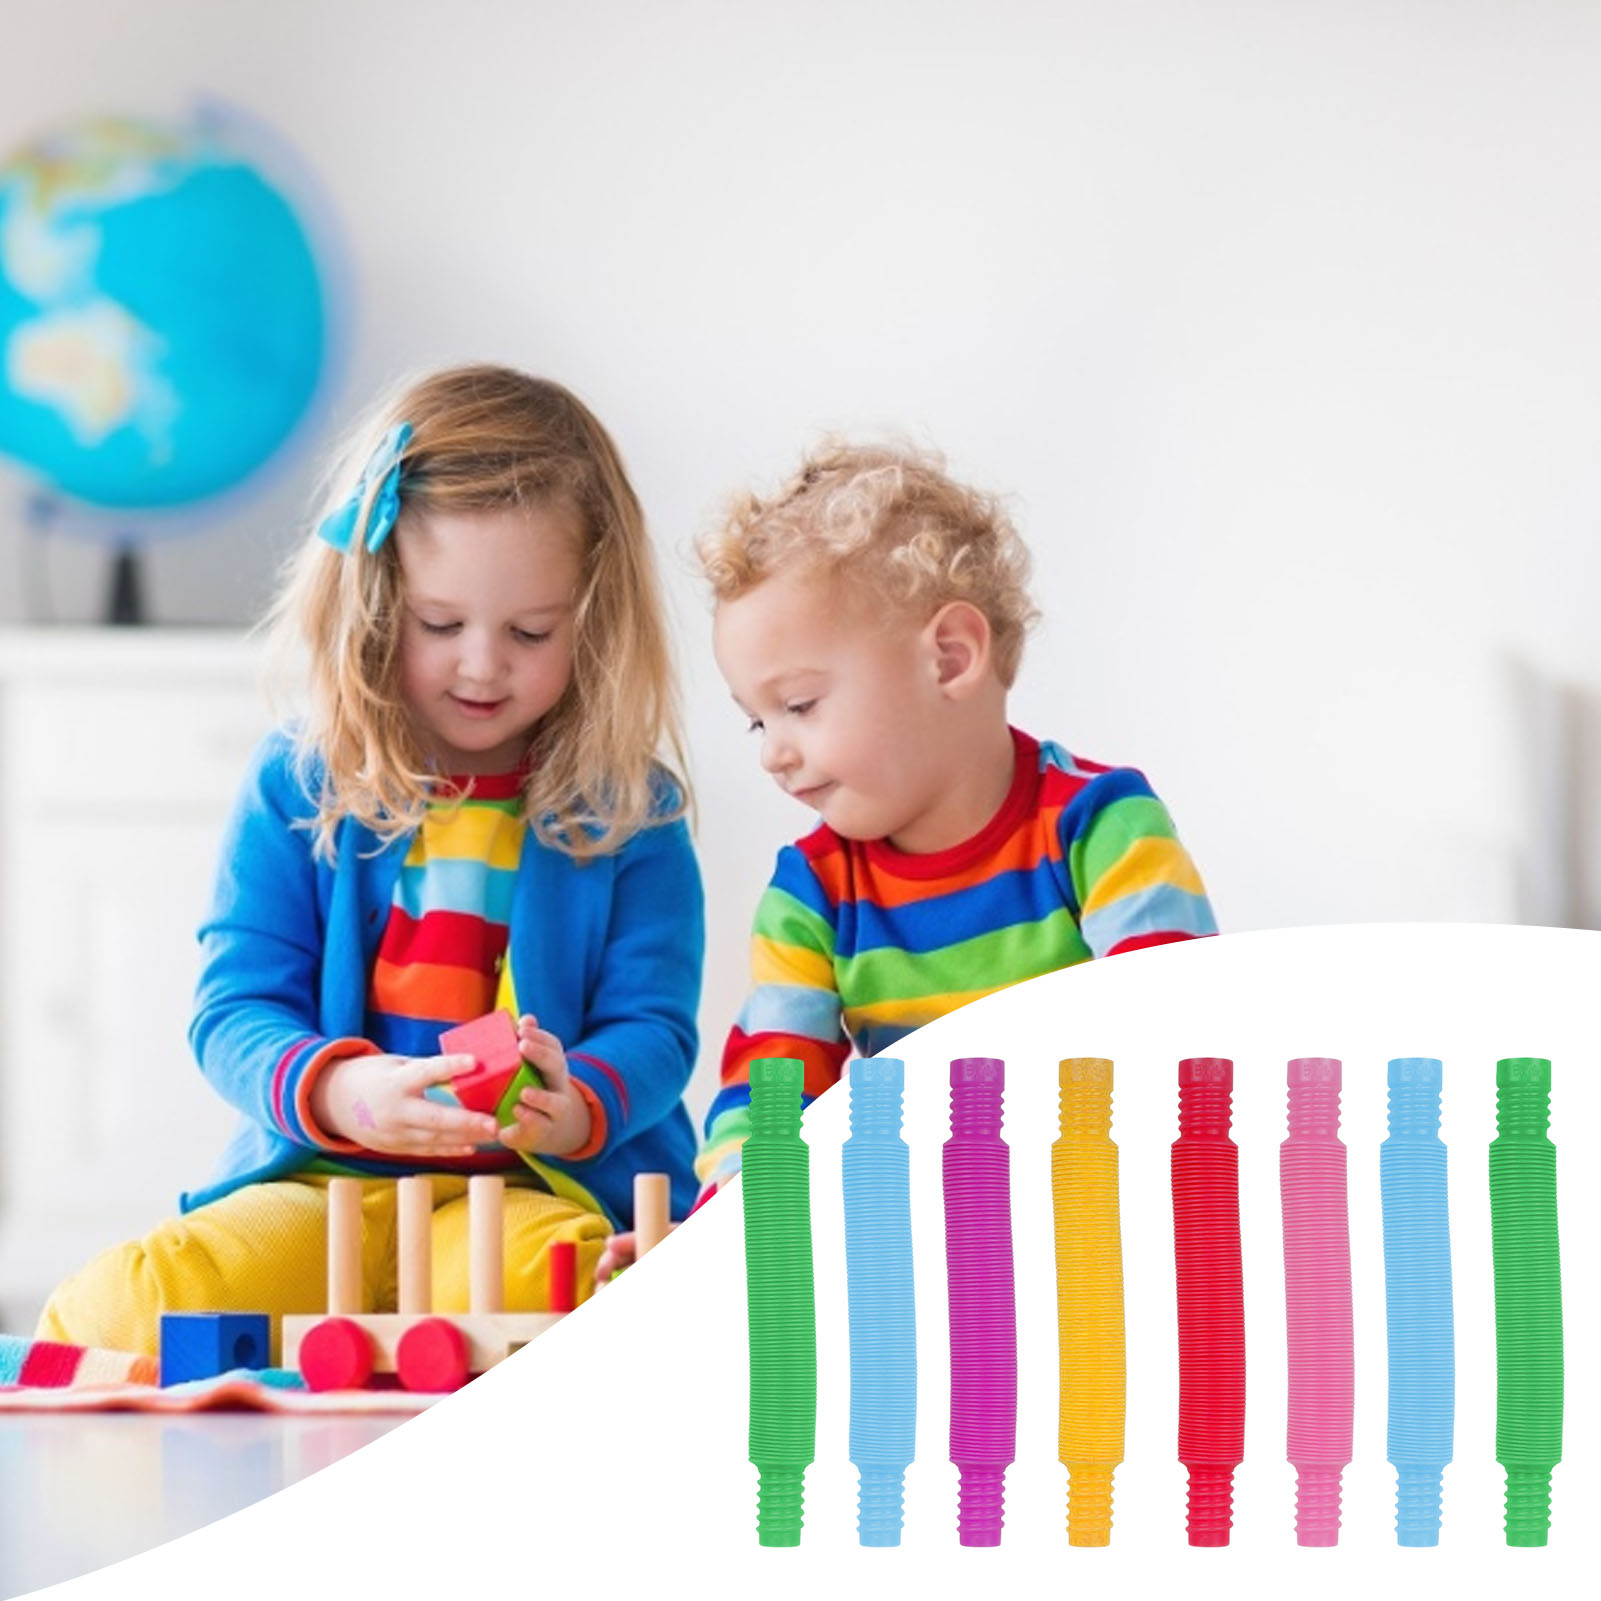 Funny Toys Pop-Tube Plastic Colorful Creative Children's Coil Early-Development Folding img2